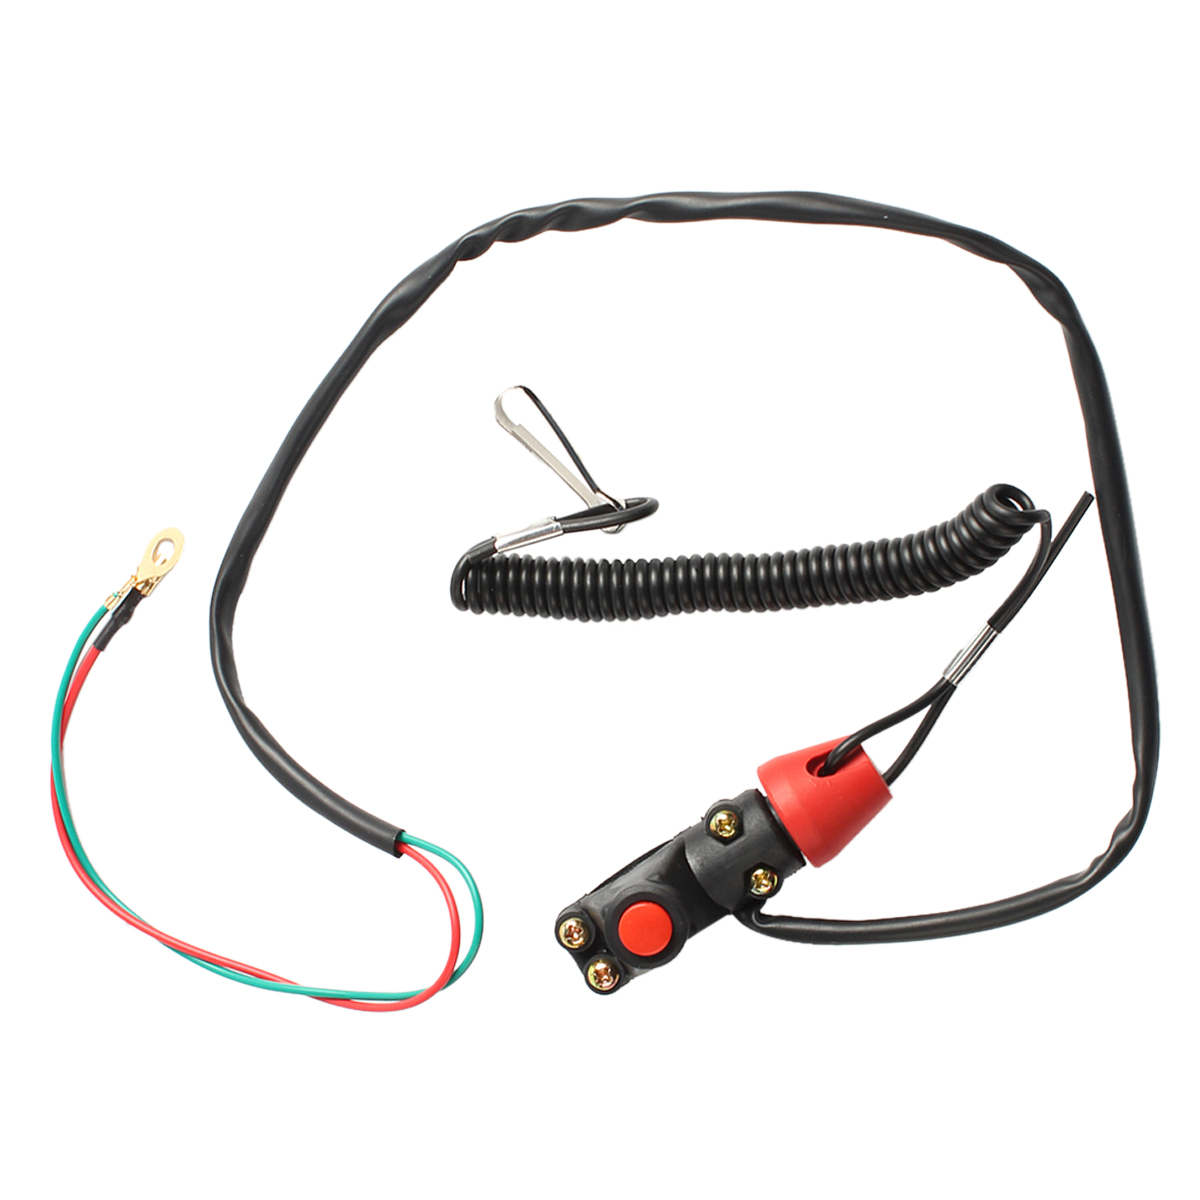 47cc 49cc Motorcycle ATV Engine Emergency Kill Stop Switch Safety Tether Kit